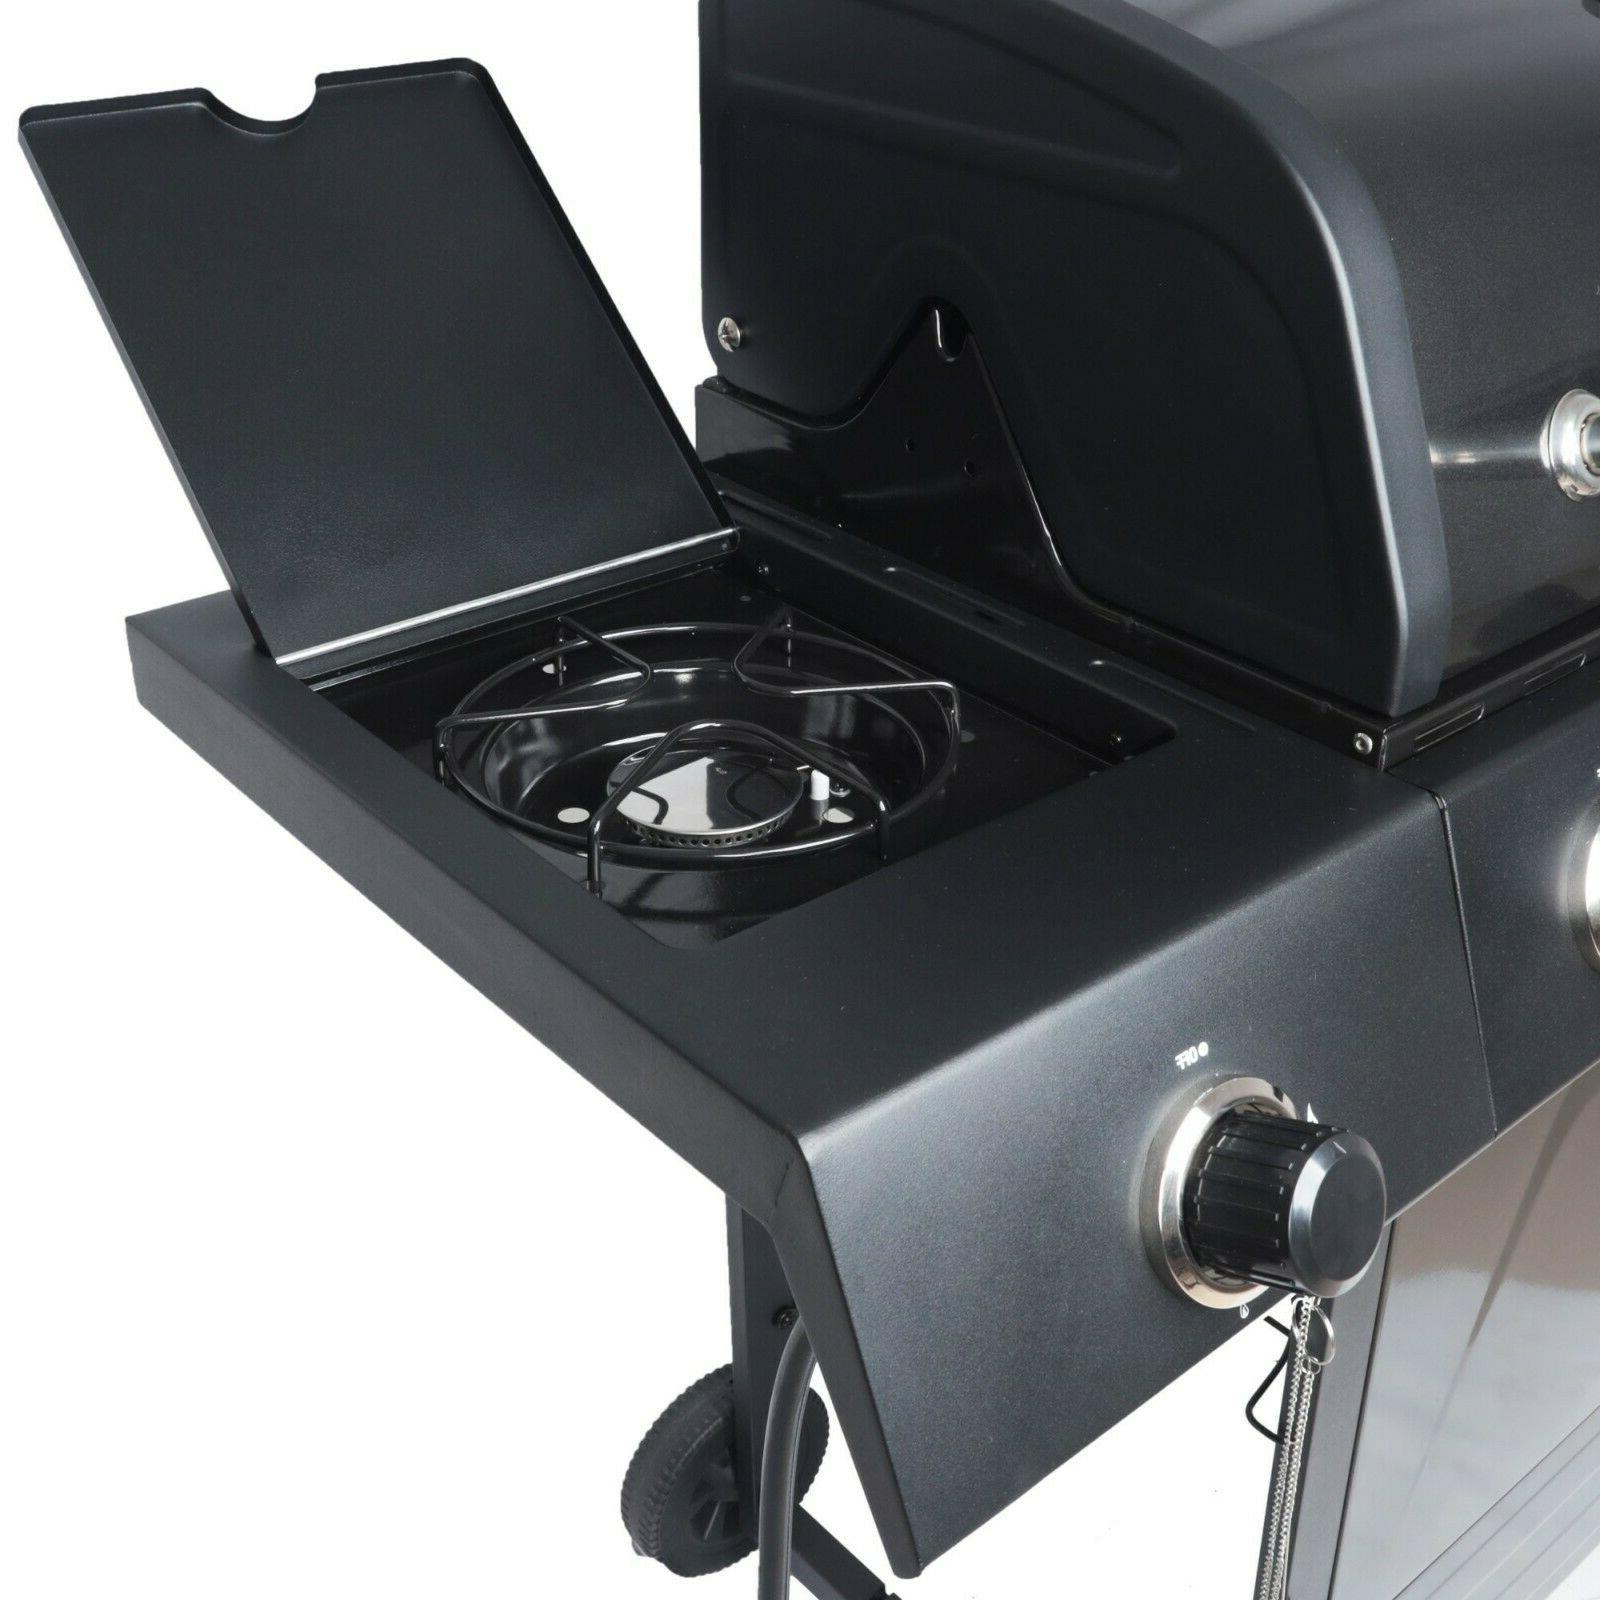 Best Gas Grill 4 Burner Portable Backyard Bbq